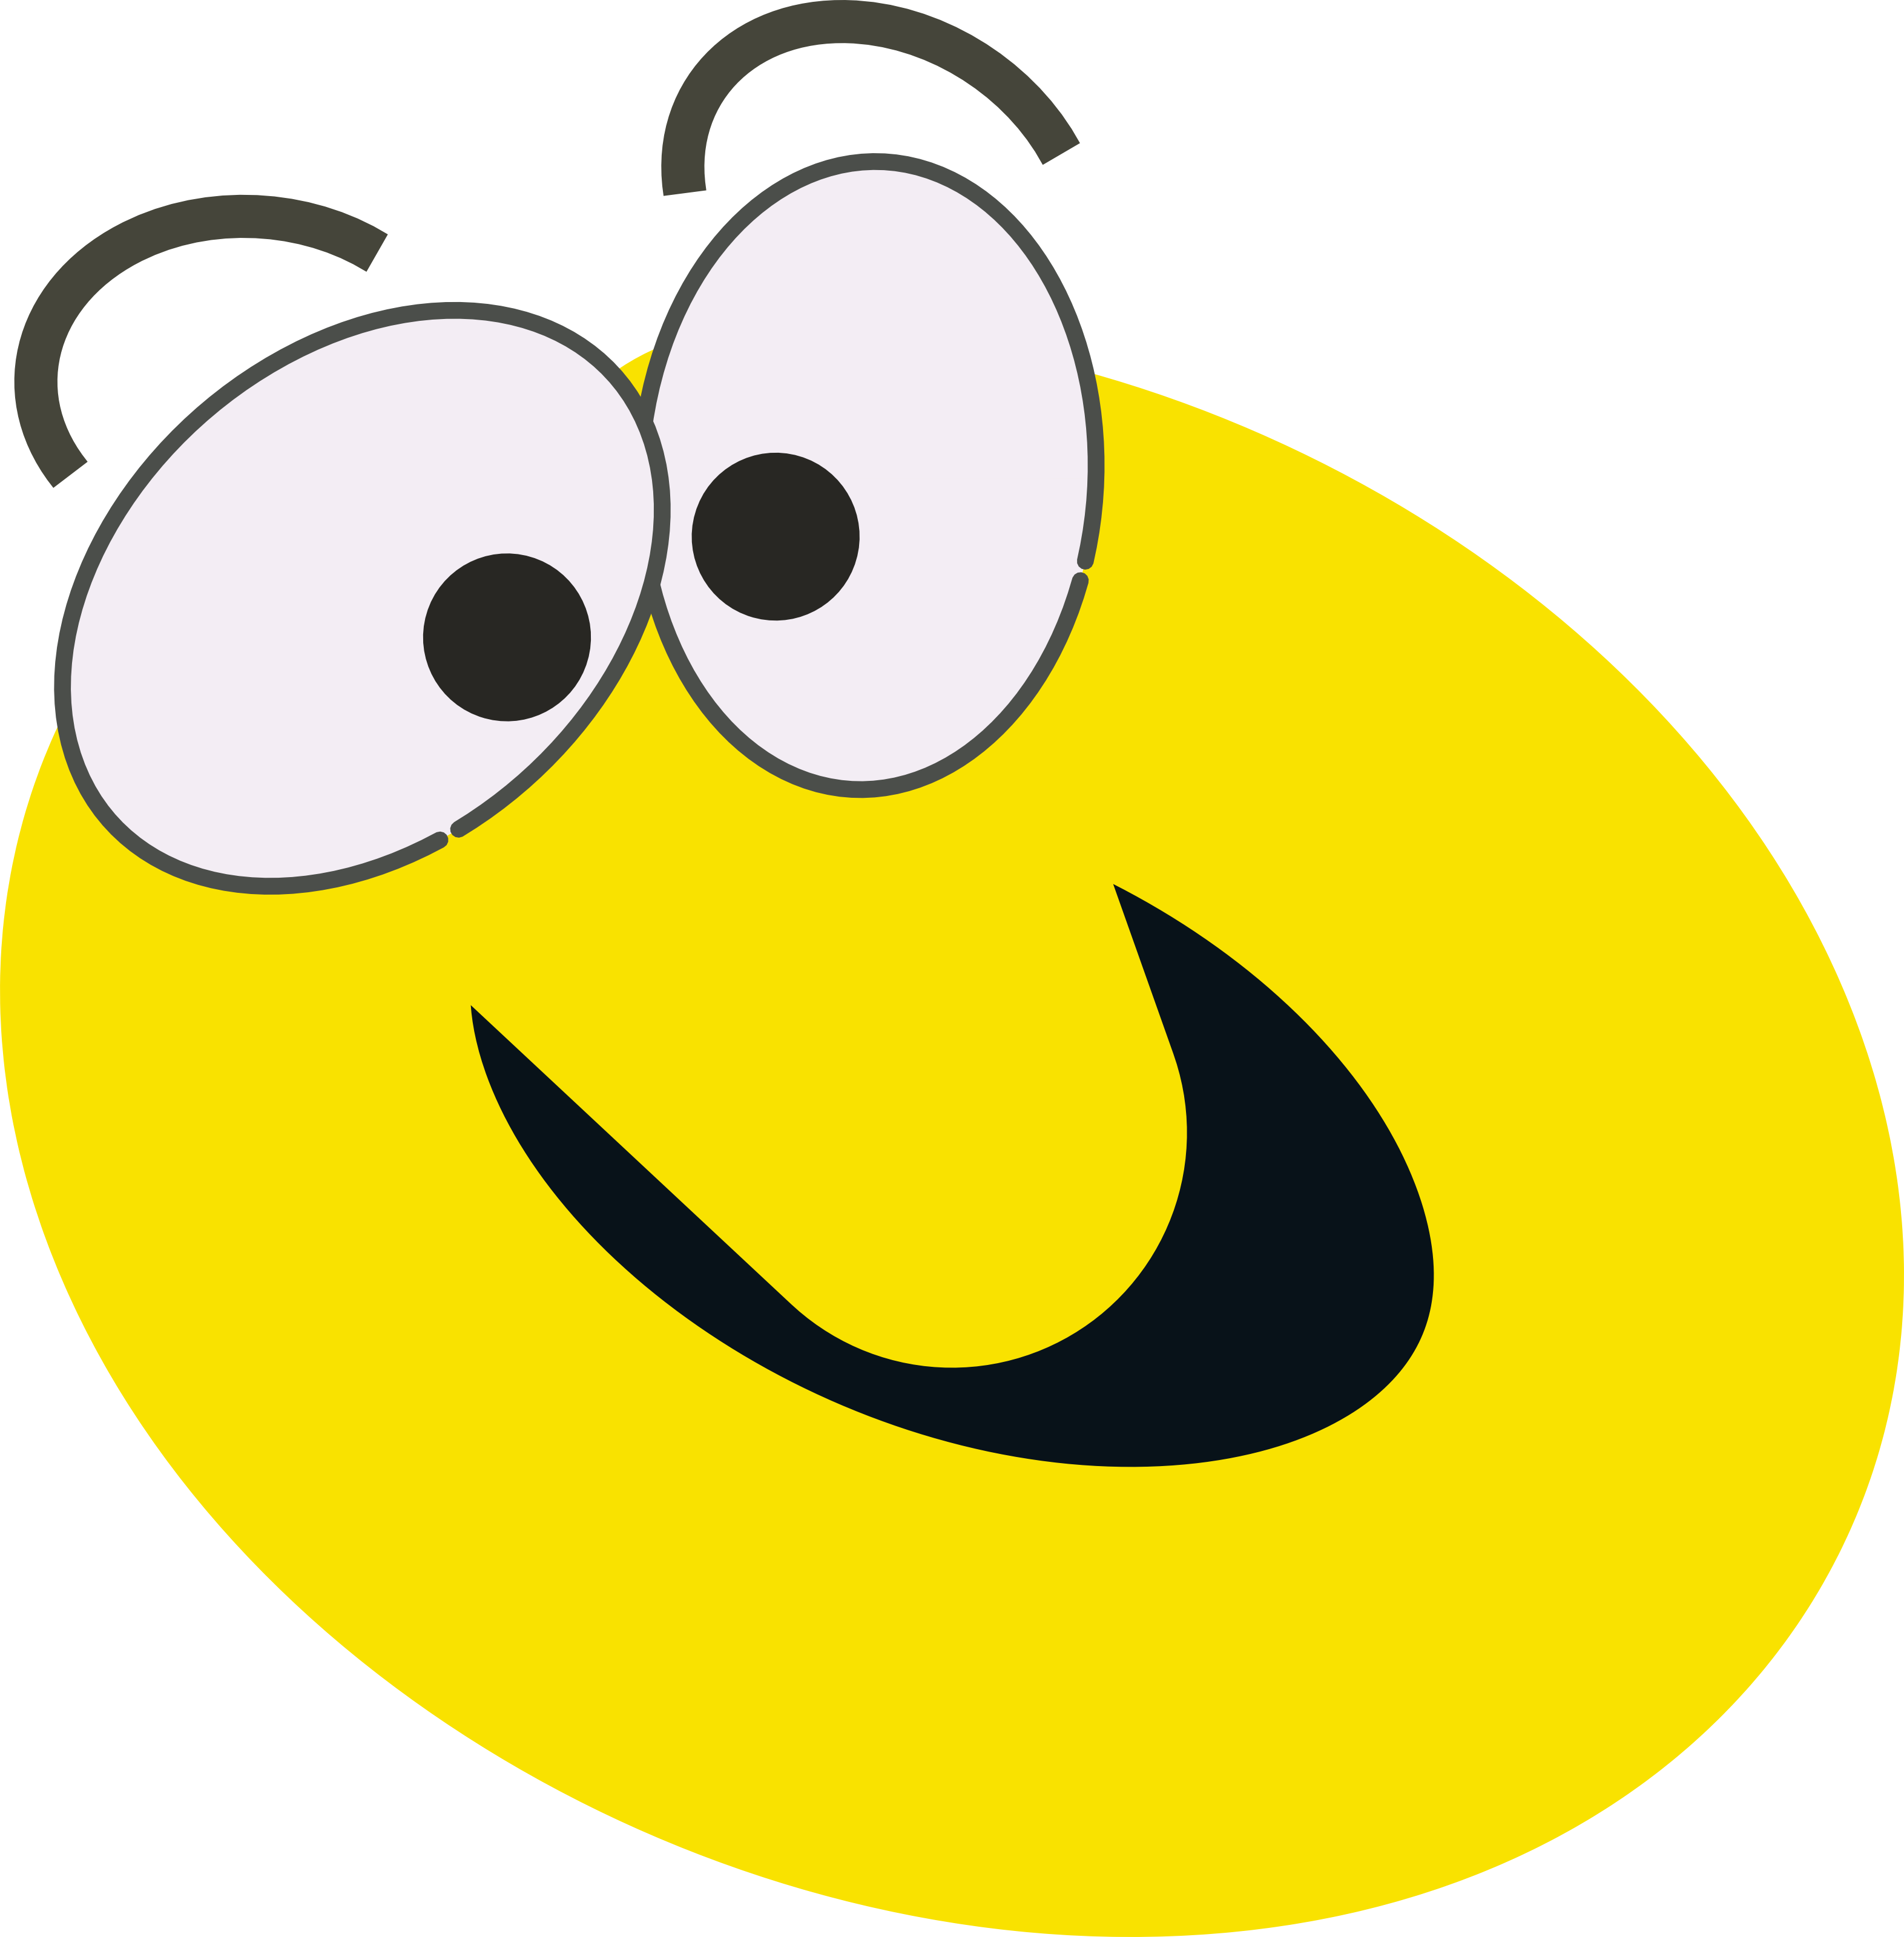 png Cartoon Faces Free Clipart